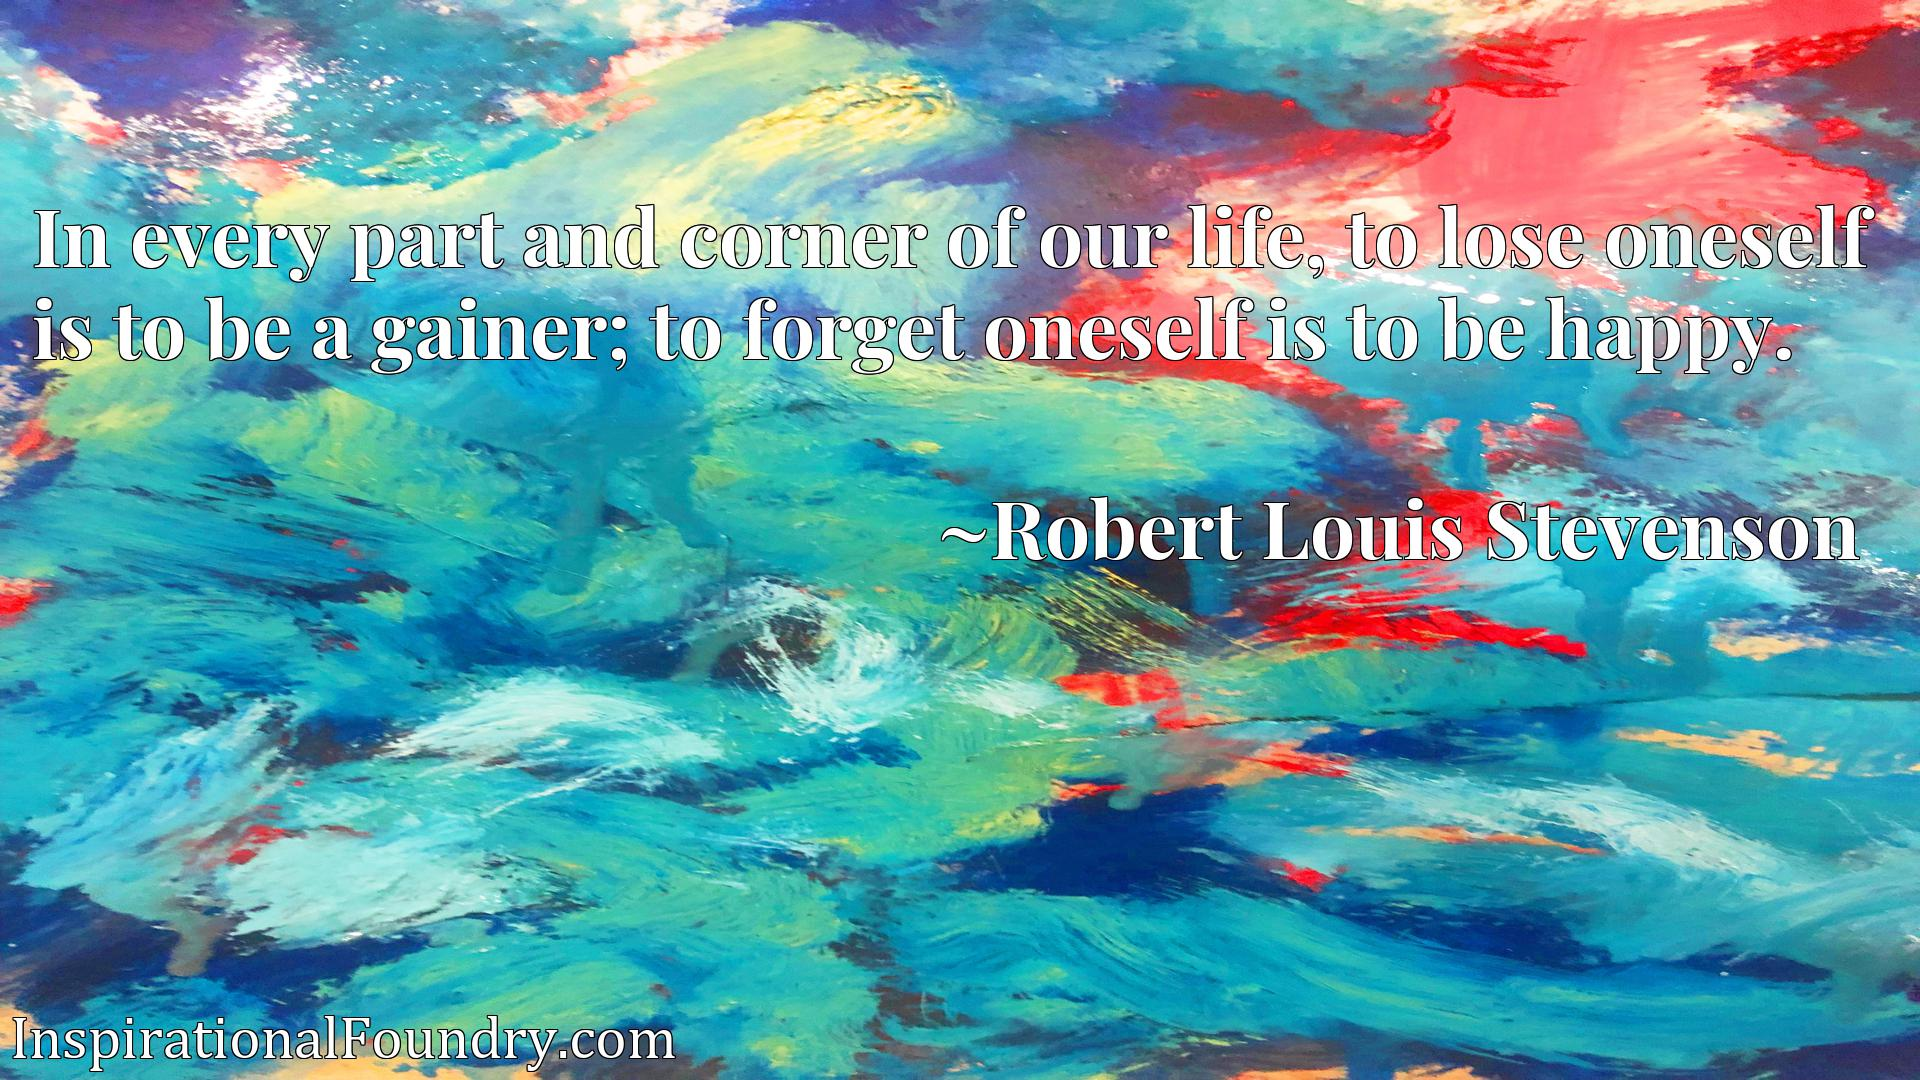 In every part and corner of our life, to lose oneself is to be a gainer; to forget oneself is to be happy.